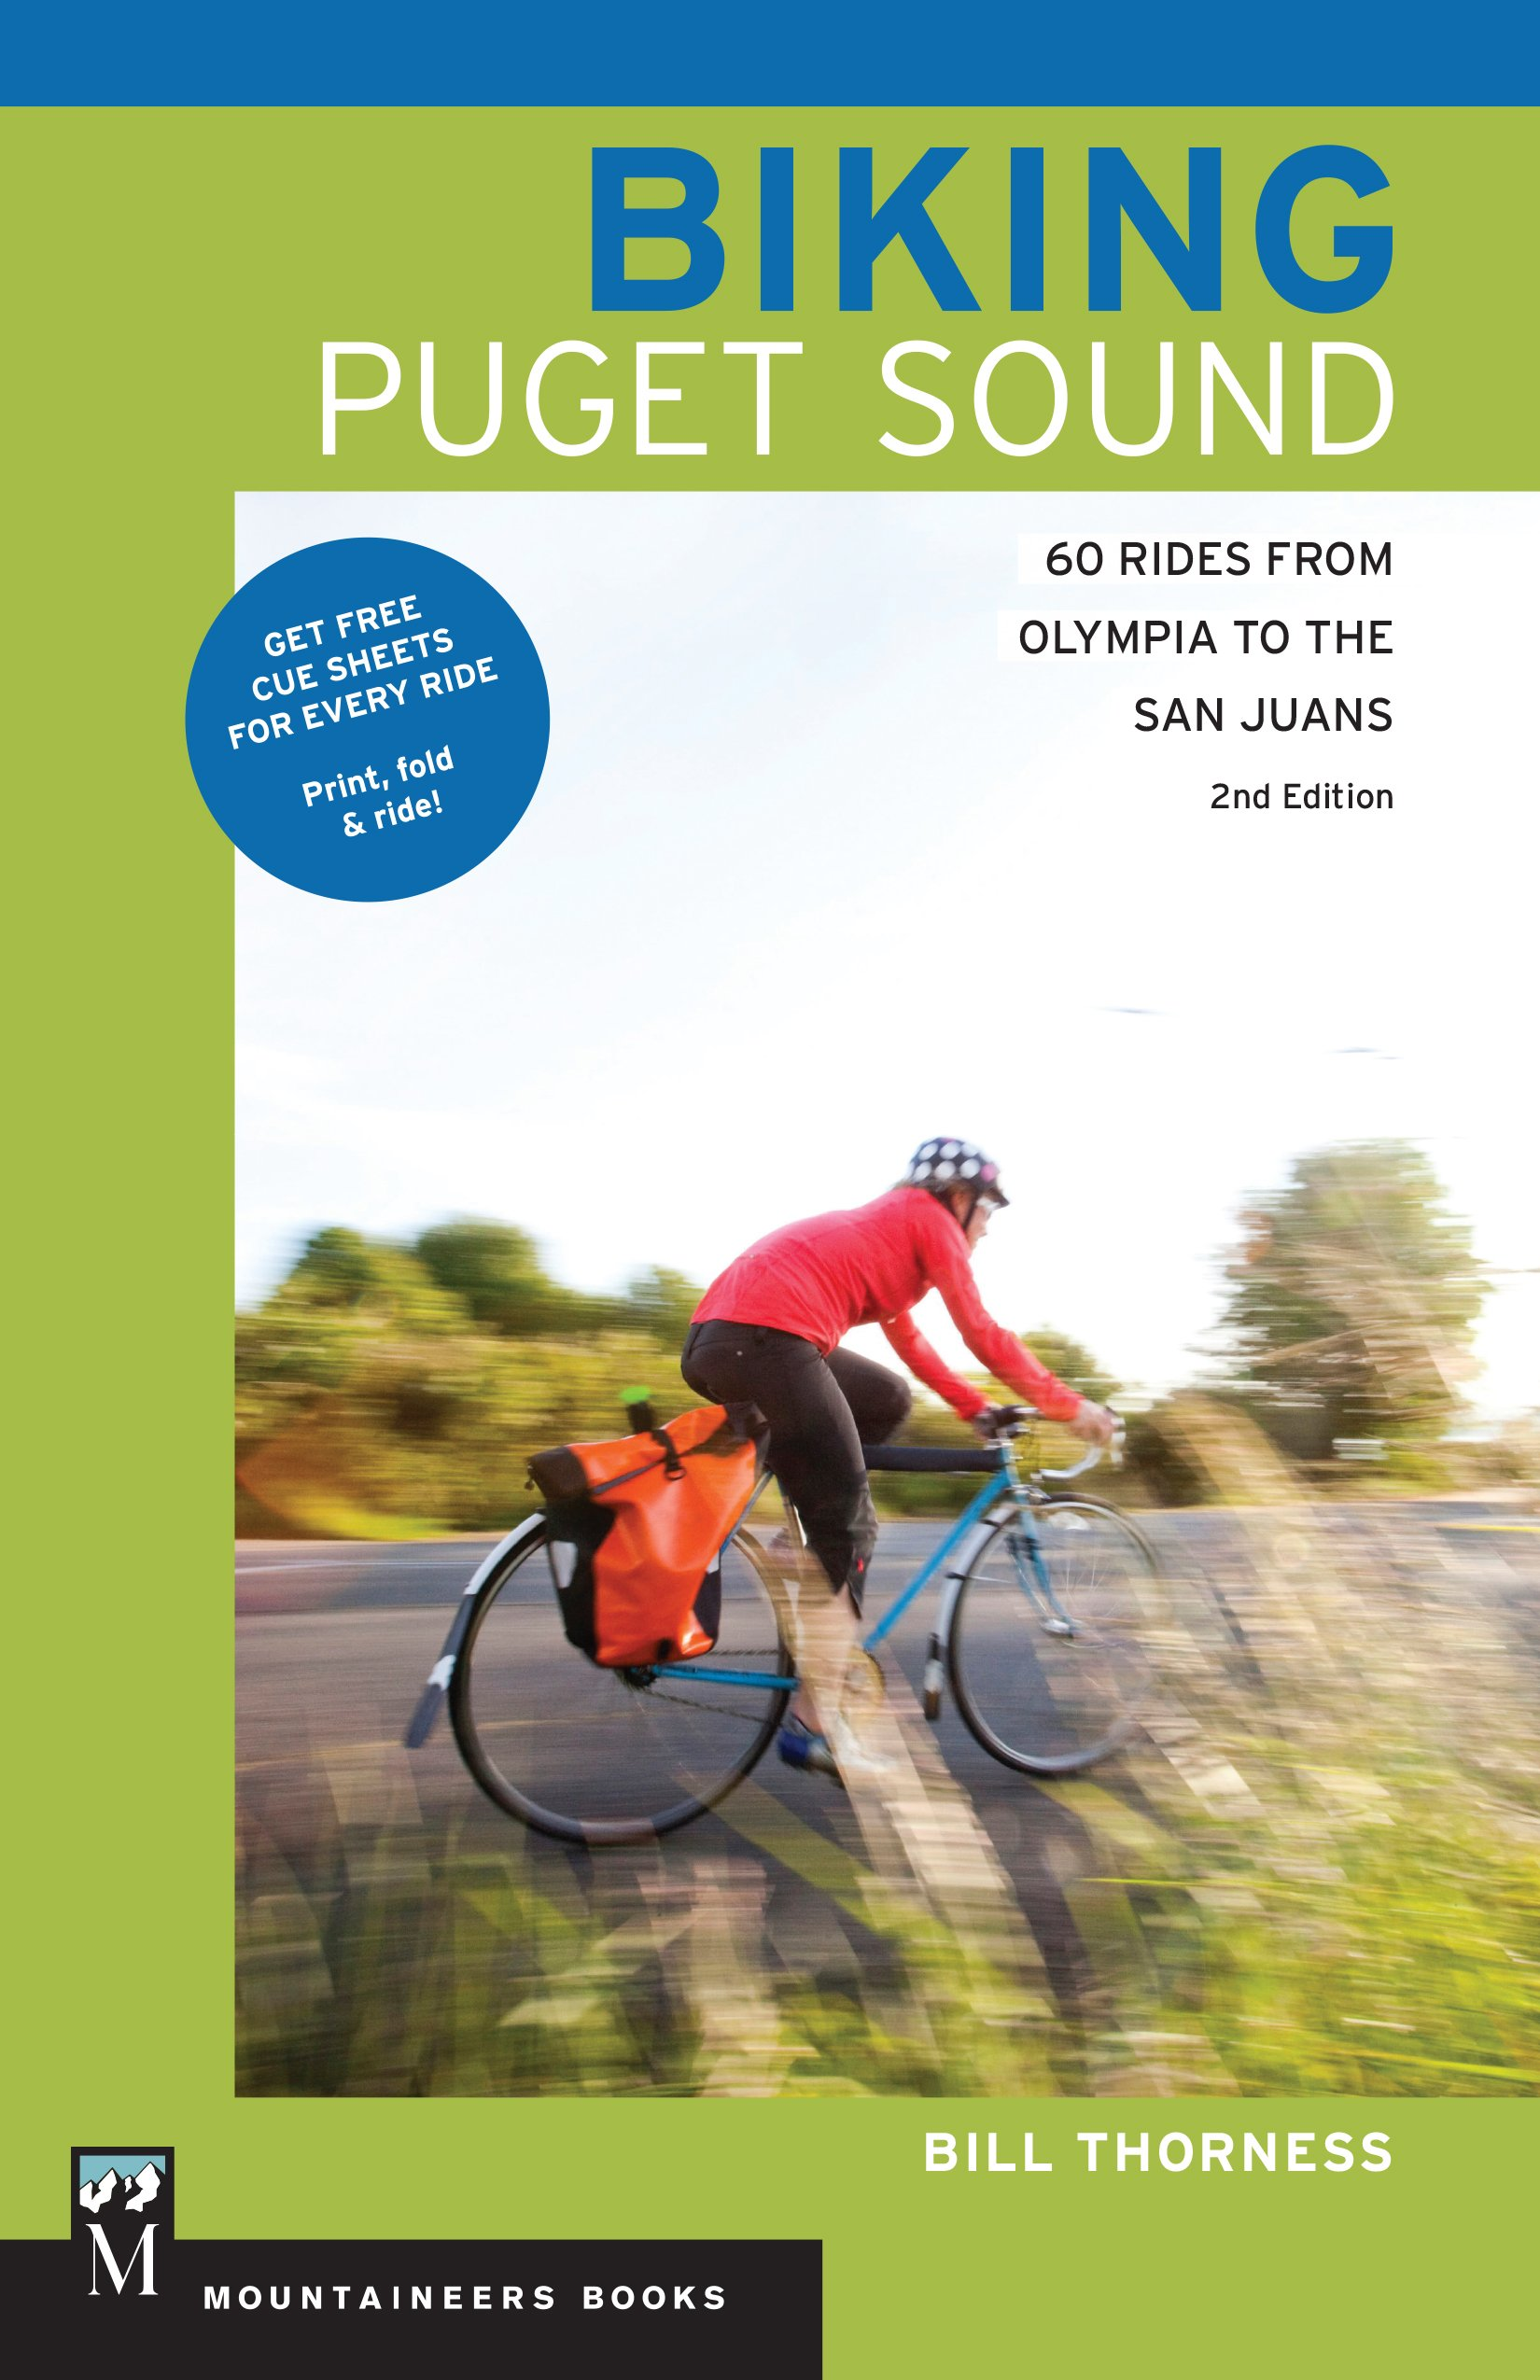 Image OfBiking Puget Sound: 60 Rides From Olympia To The San Juans